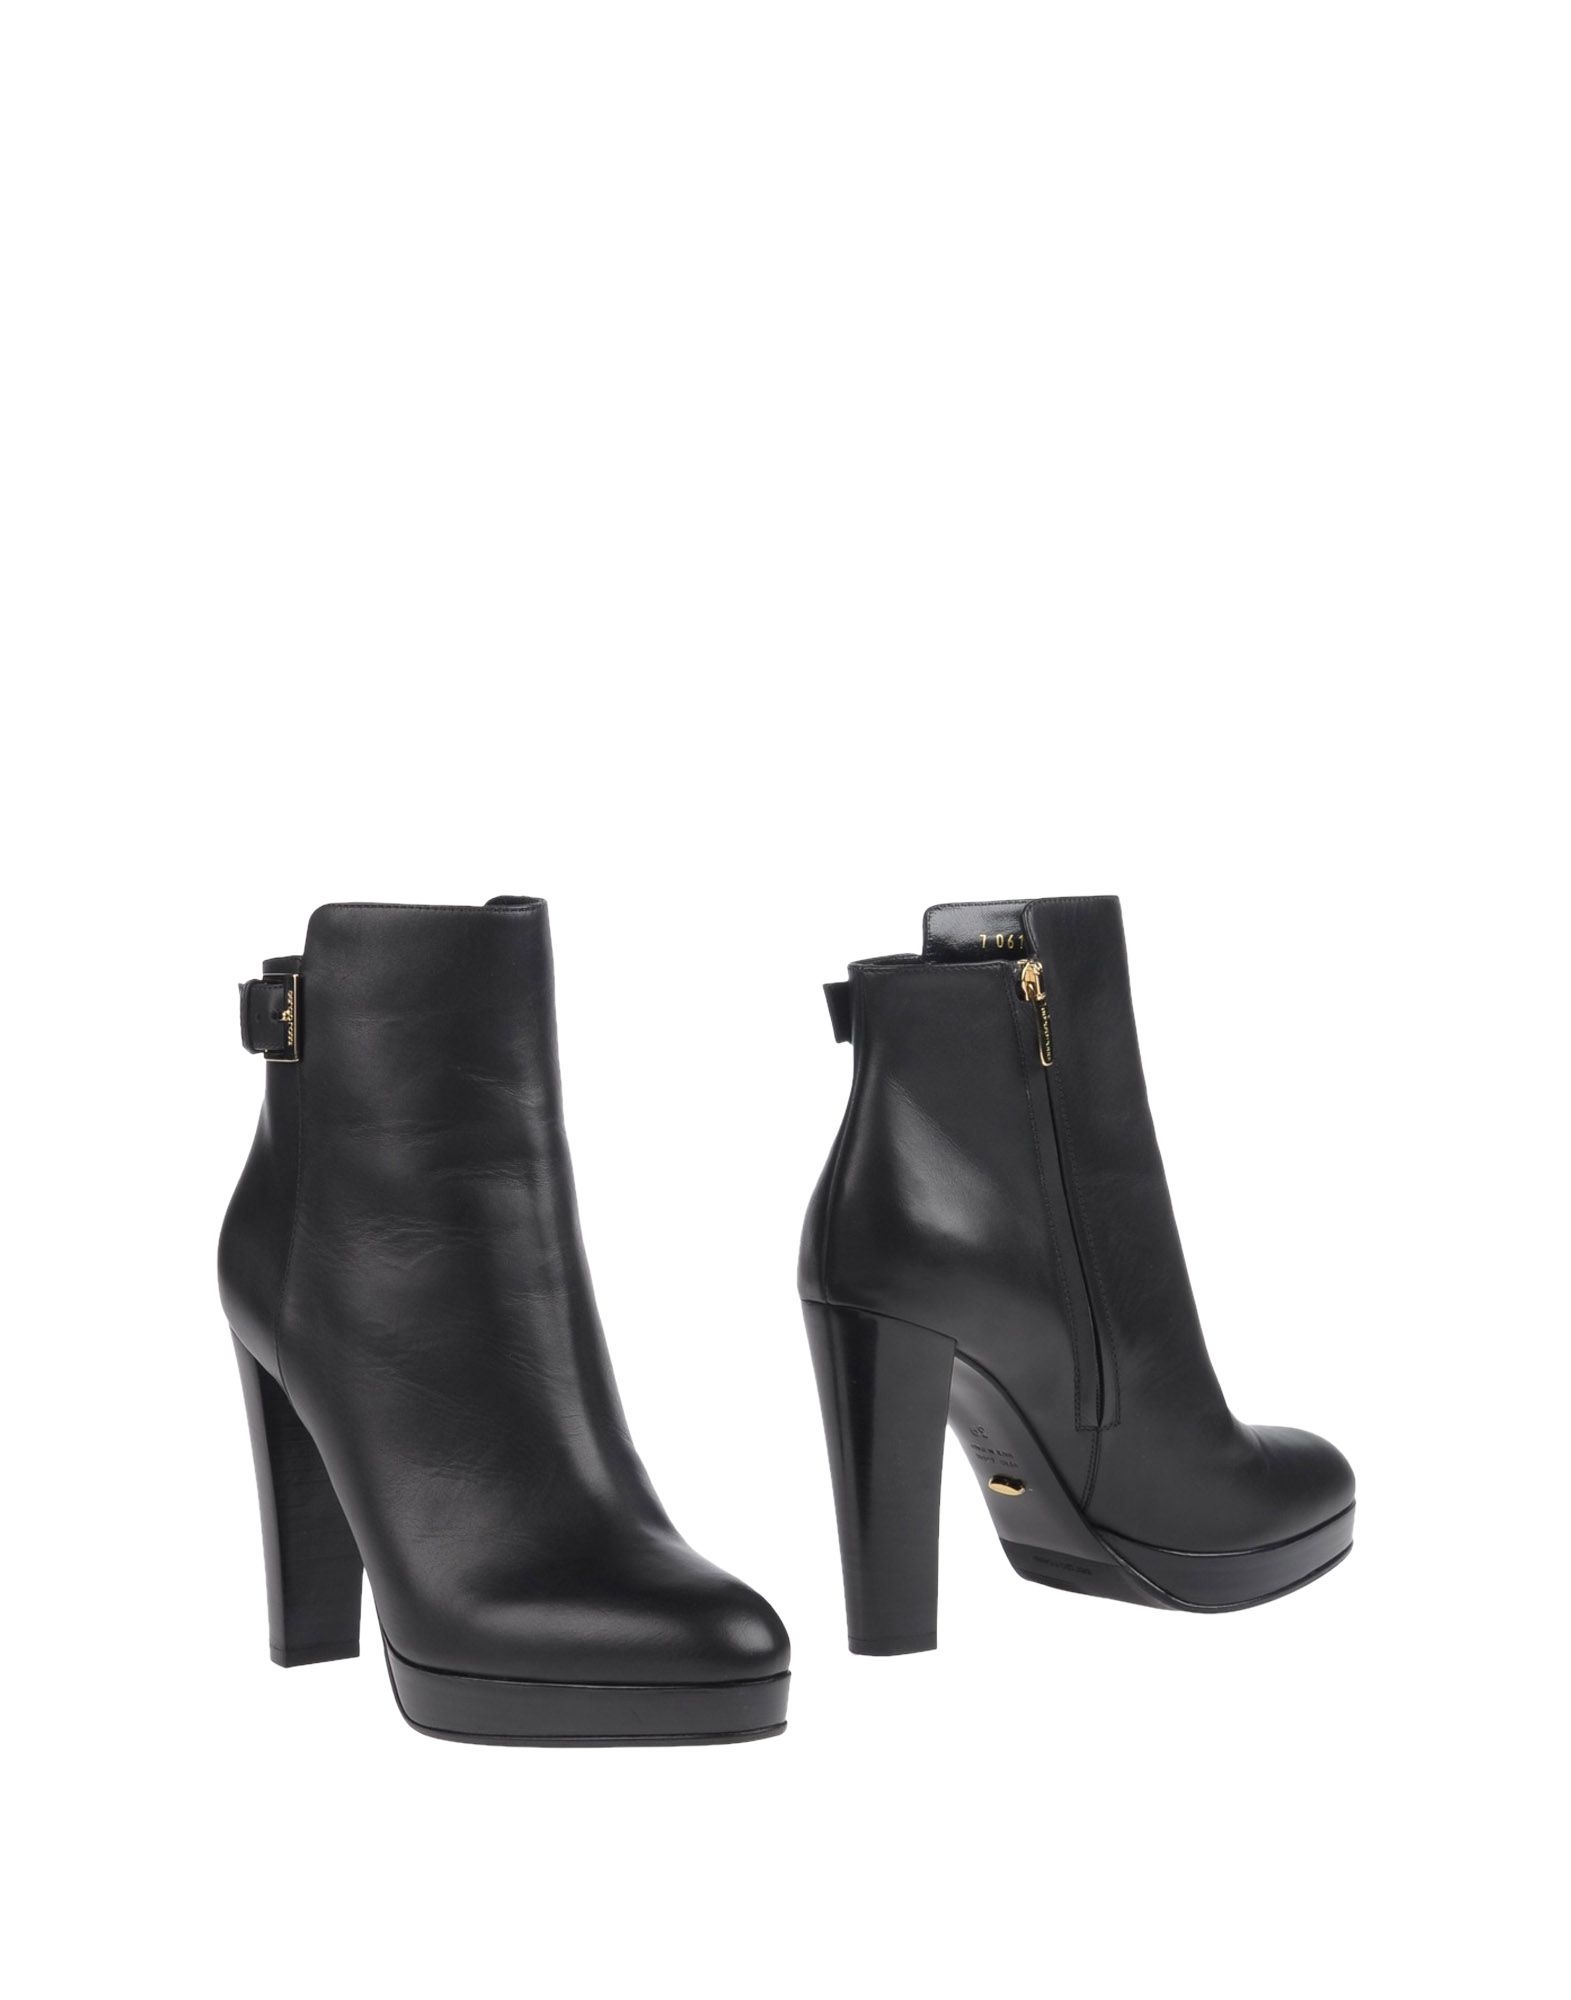 Sergio Rossi Ankle Boot Ankle - Women Sergio Rossi Ankle Boot Boots online on  Canada - 11198563EQ bbfb20